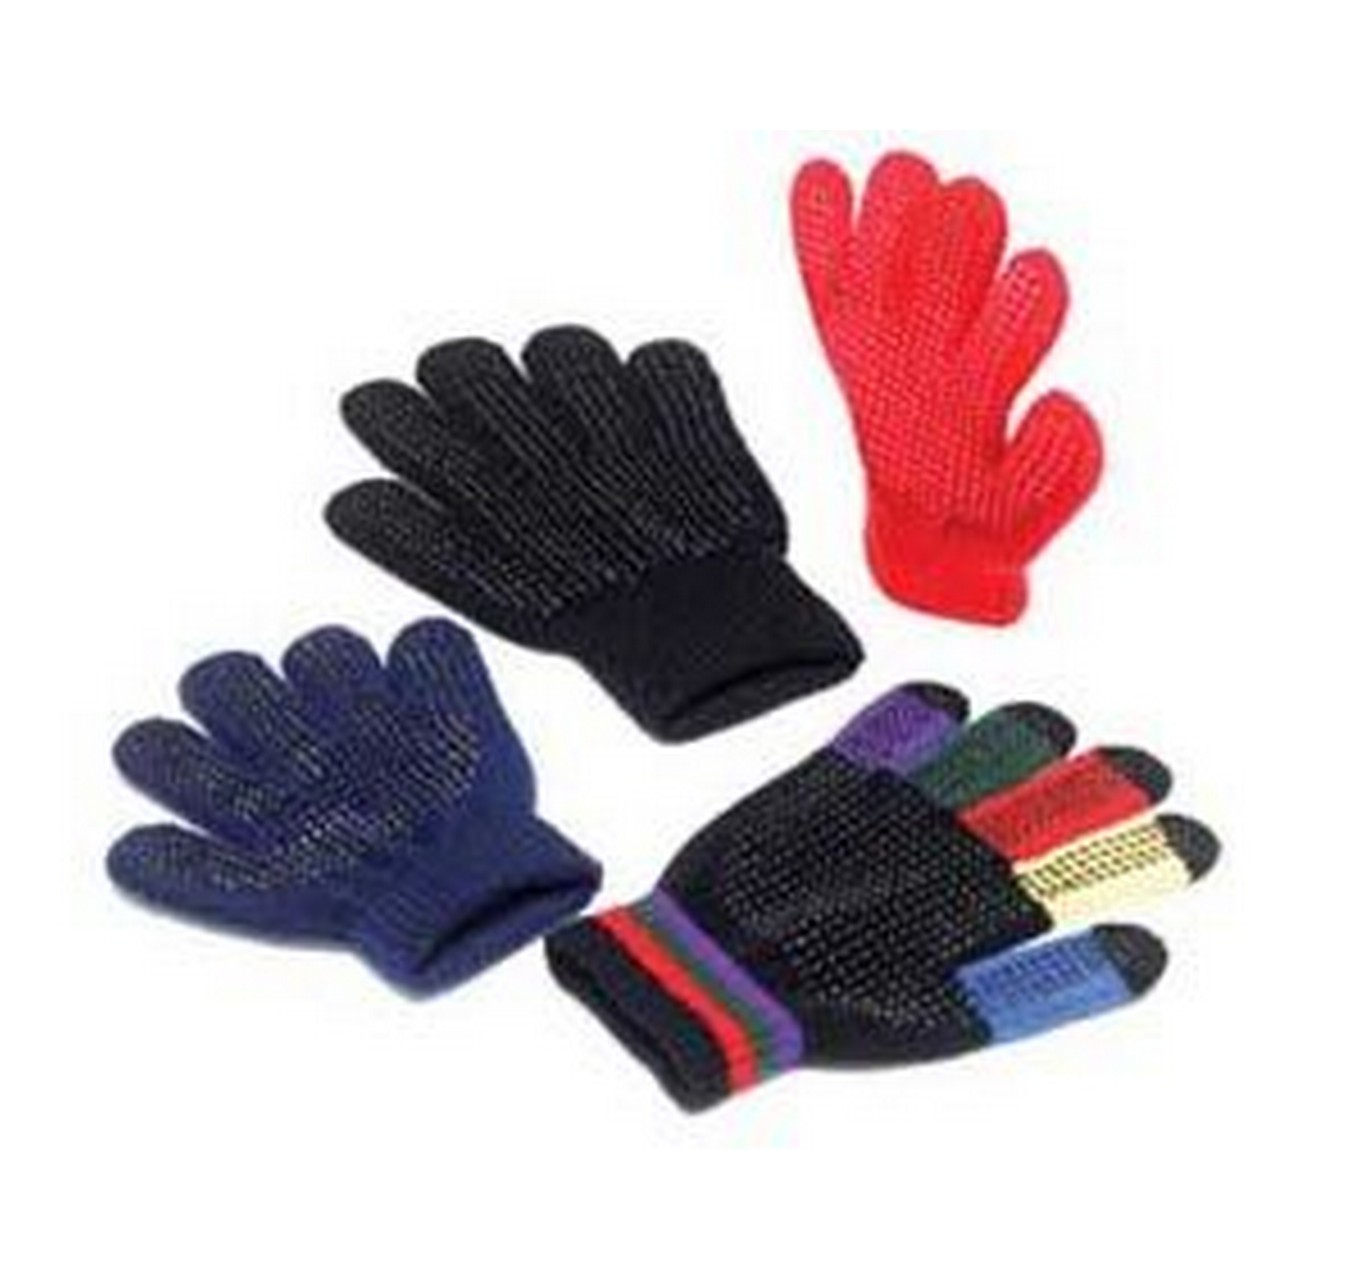 Adult Magic Gloves - Black